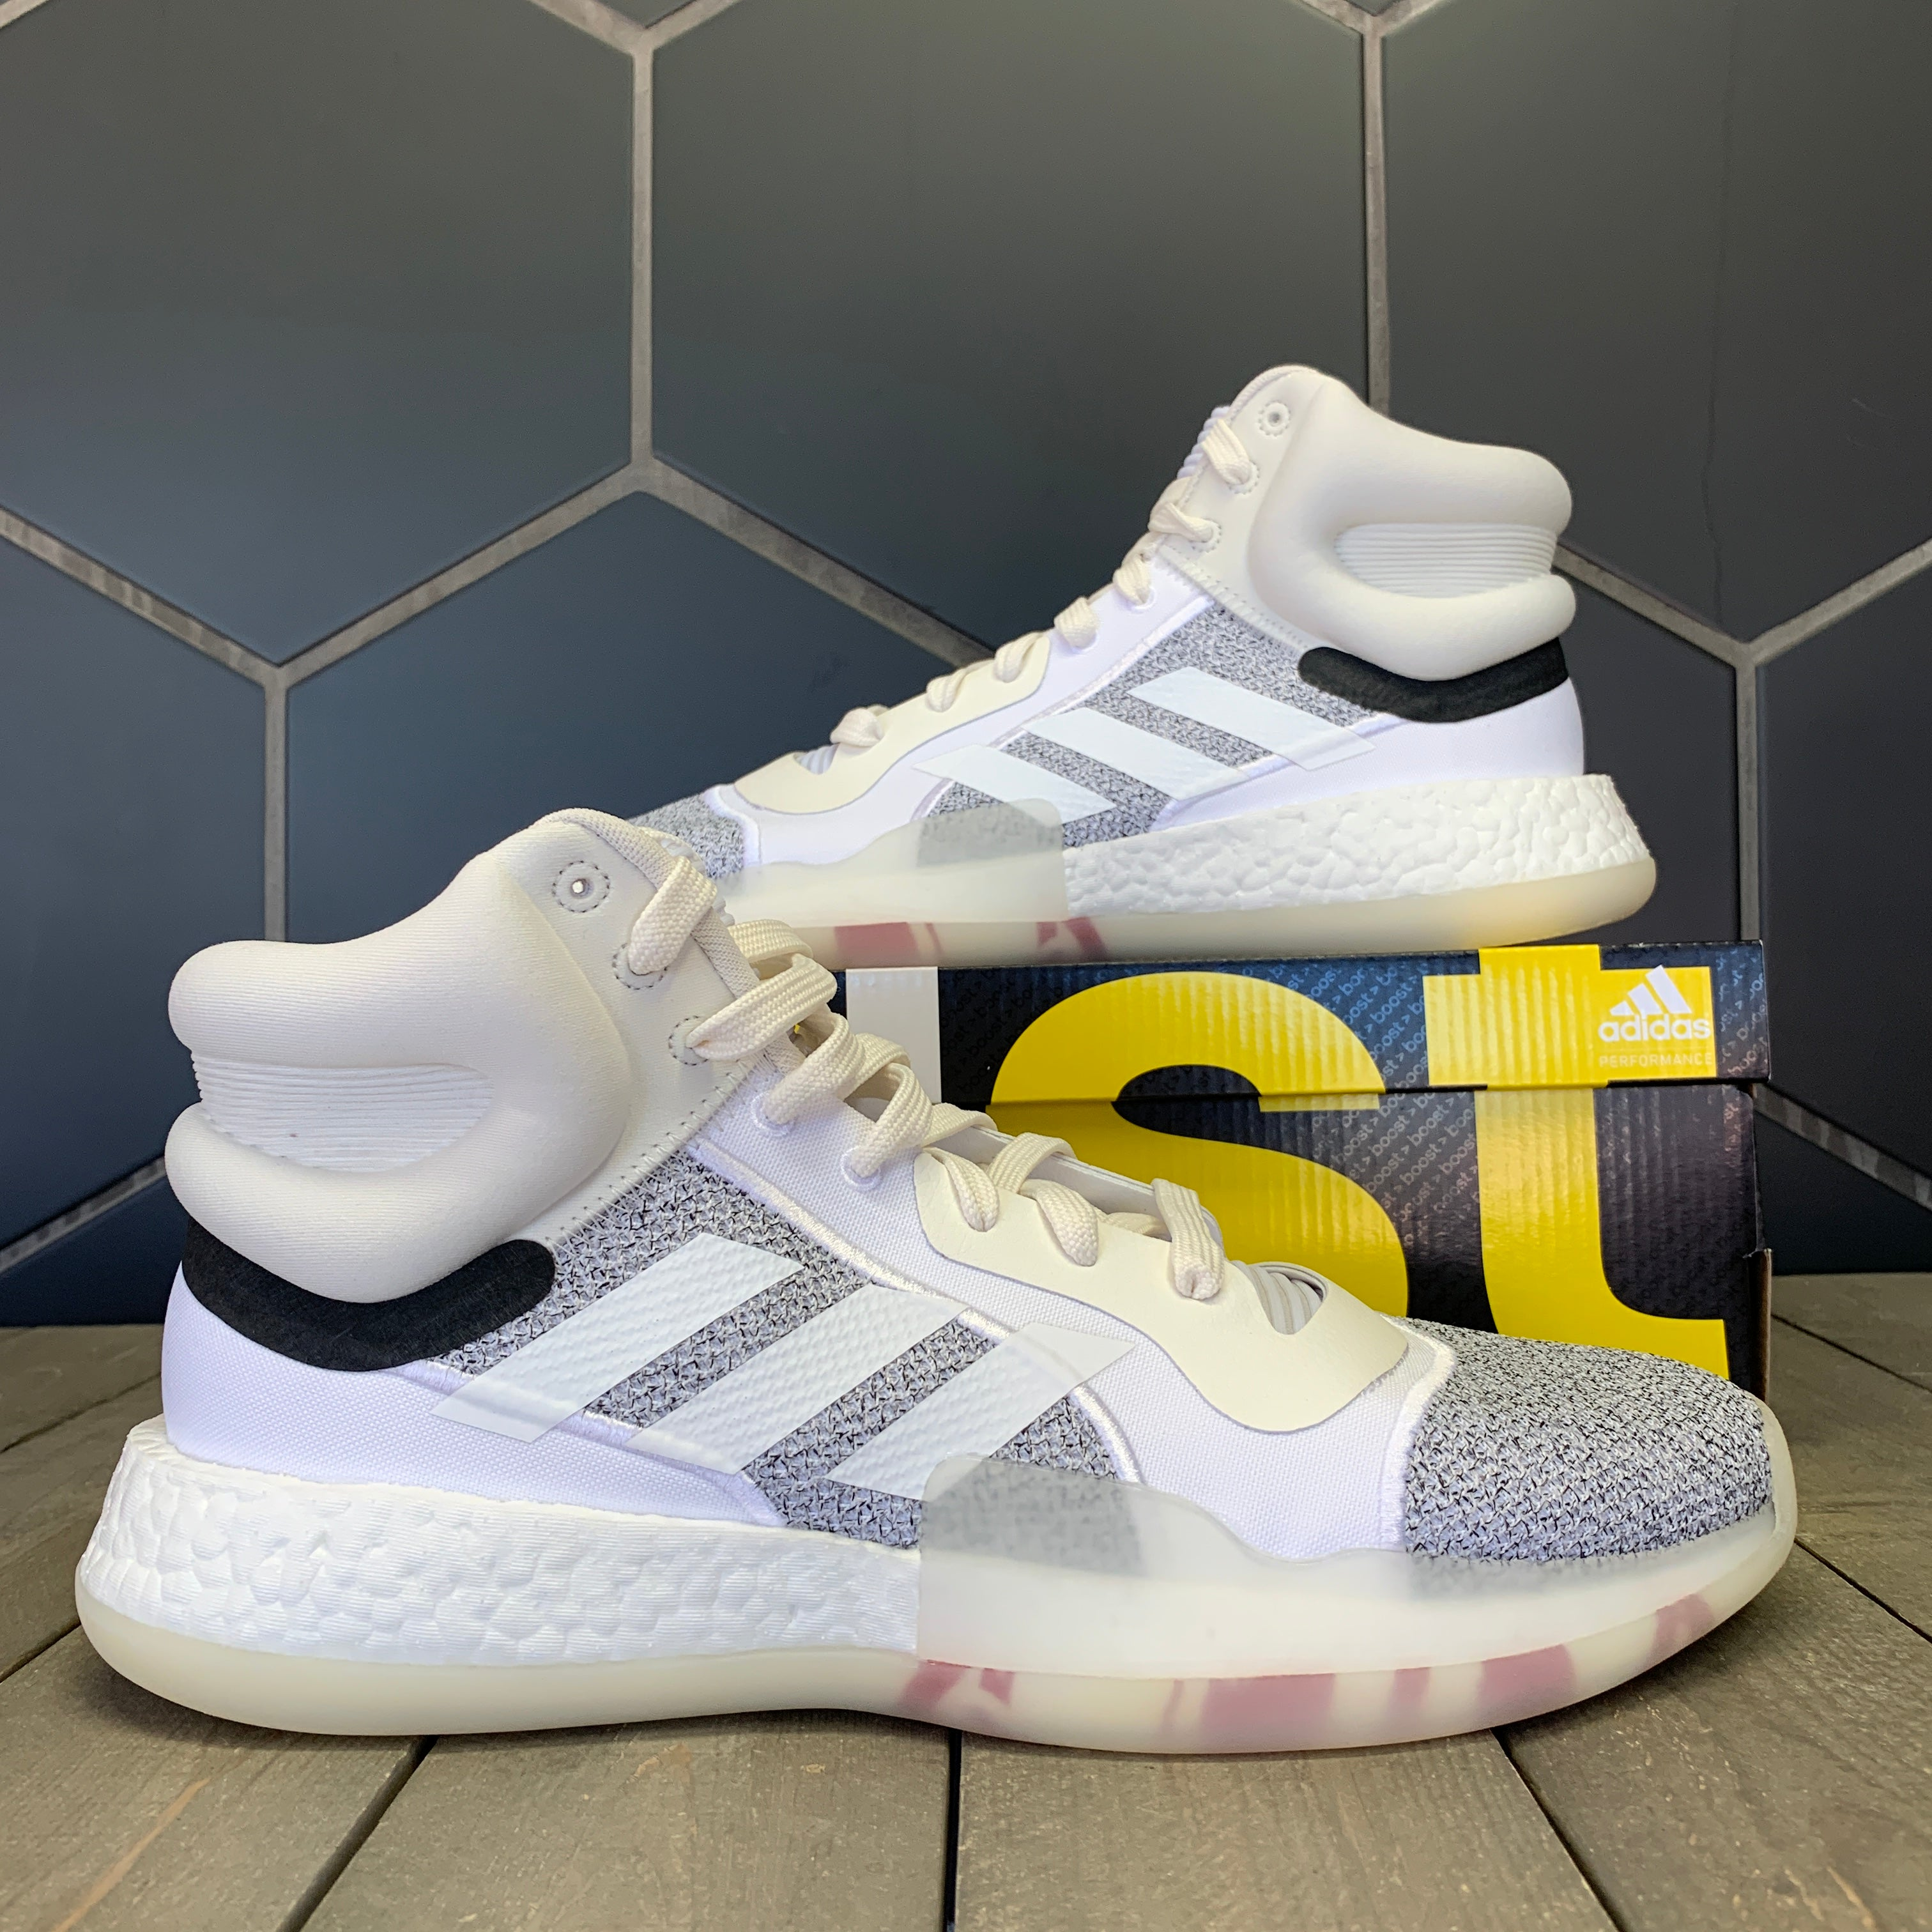 New W/ Box! Adidas Marquee Boost Footwear White Basketball Shoes (Multiple Sizes)